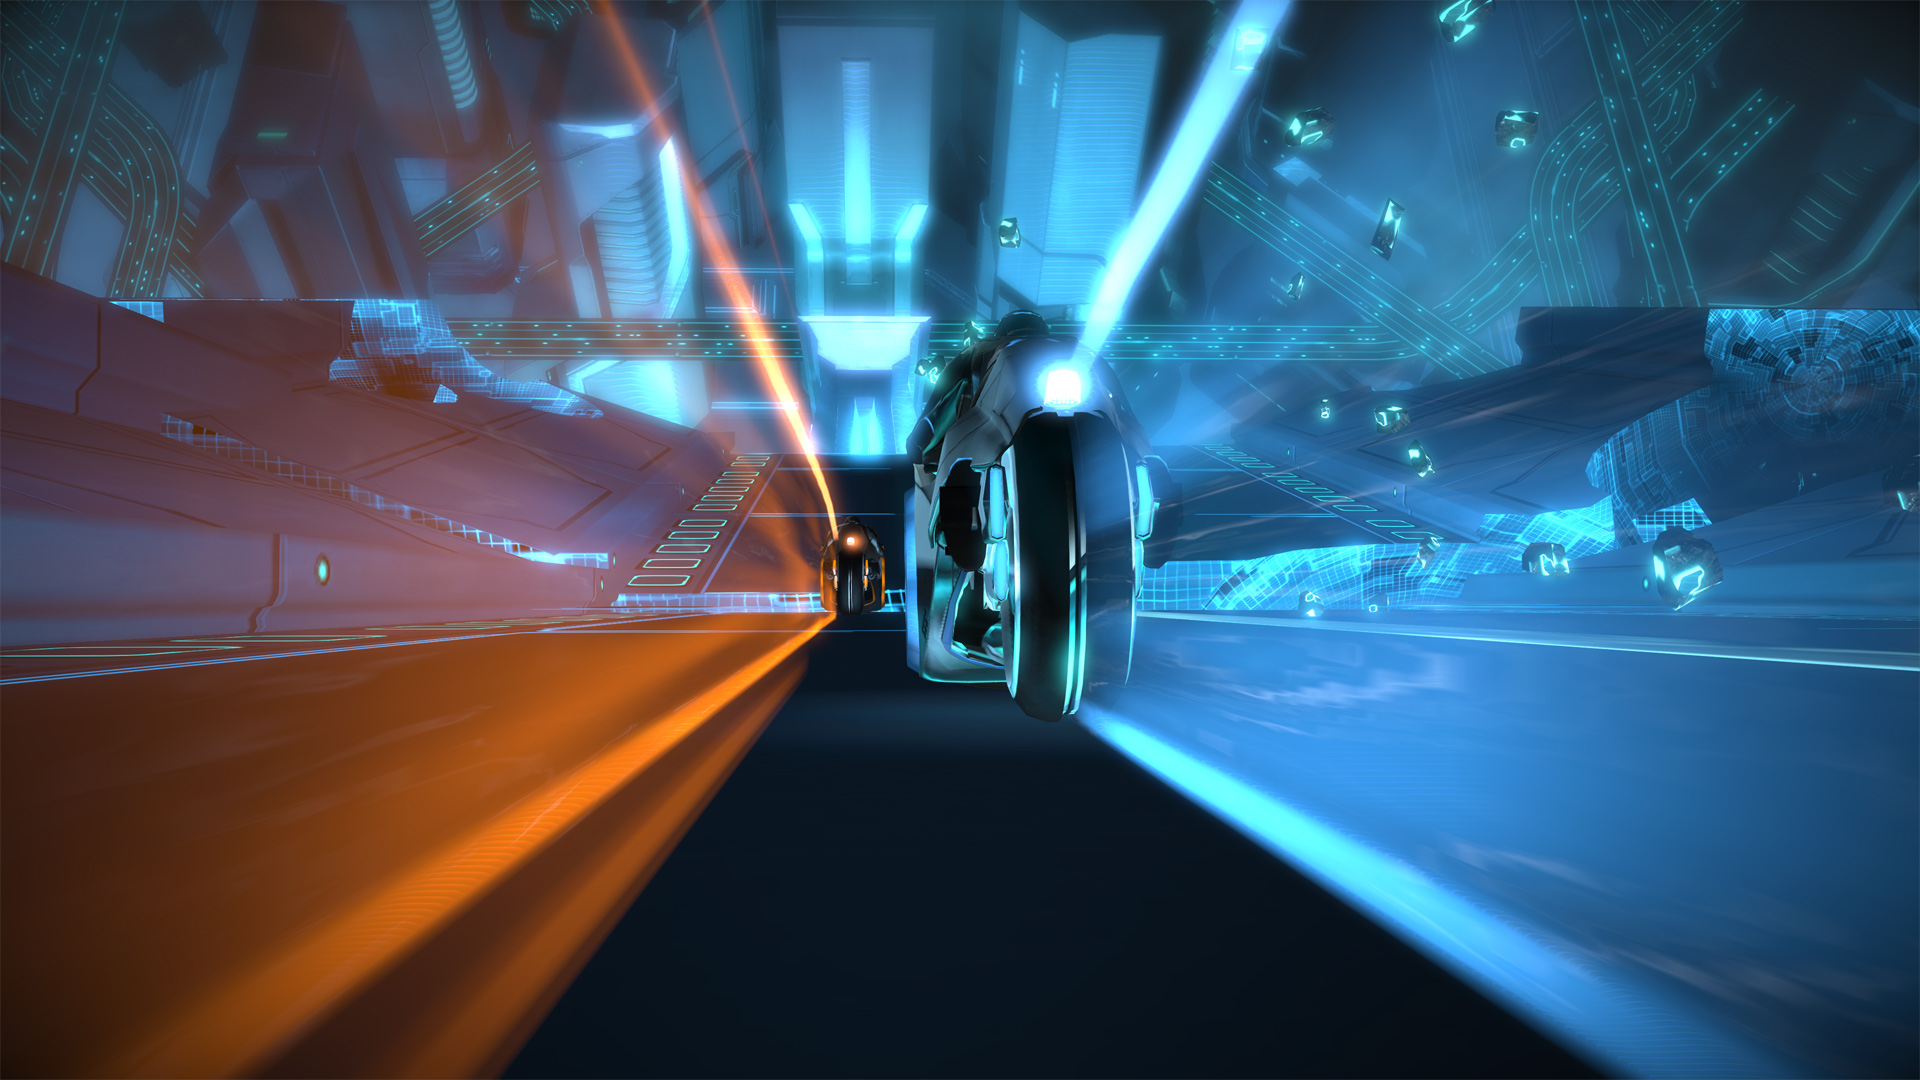 tron wallpaper hd style - photo #27